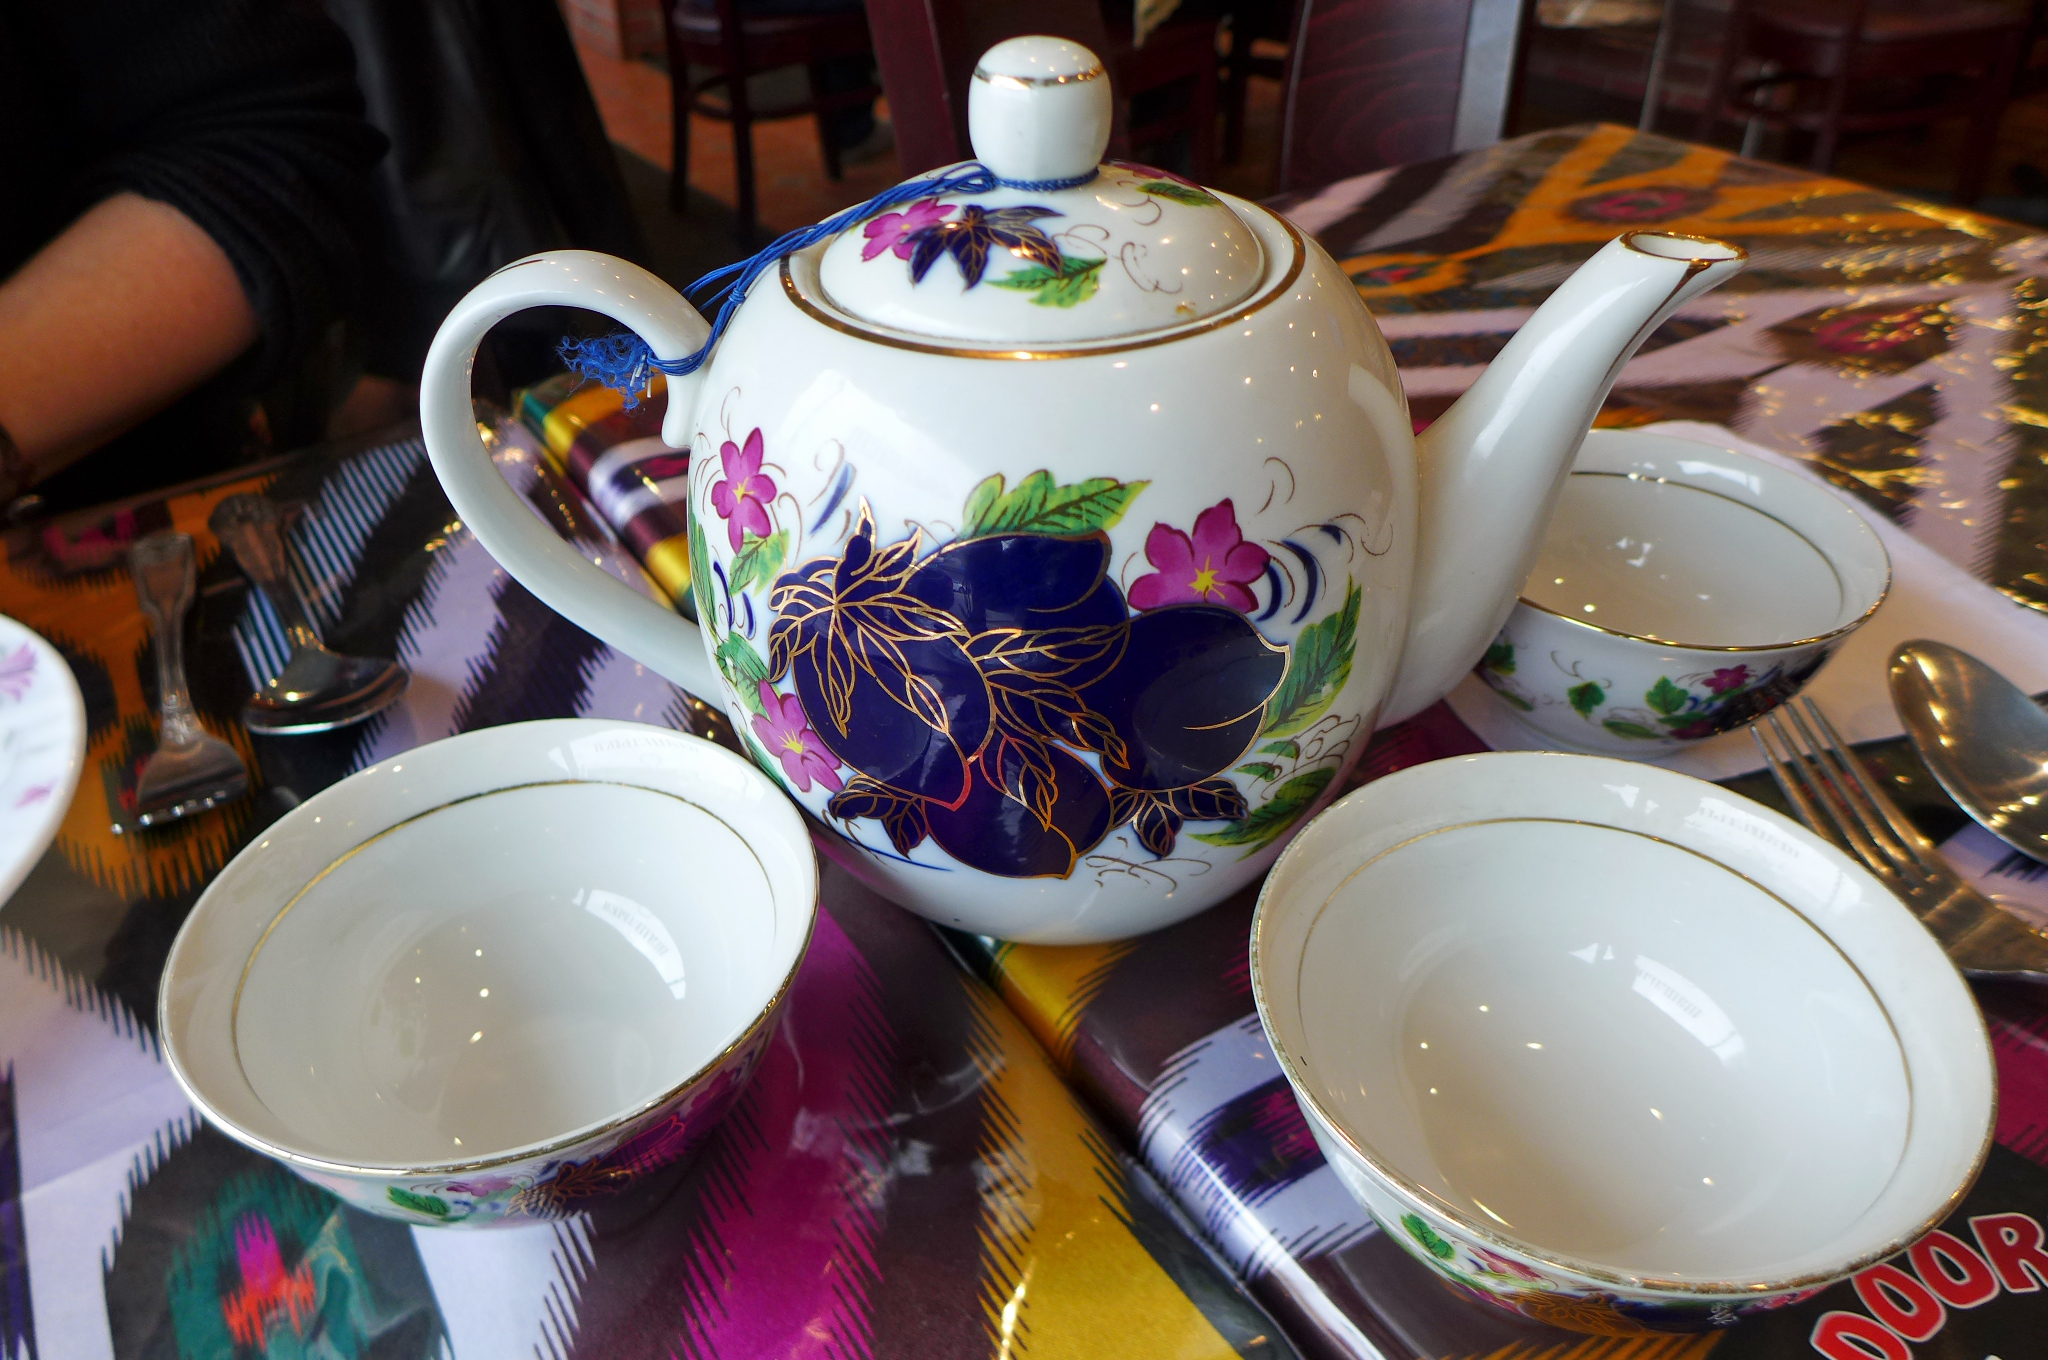 A pot of green or black tea is an essential part of any meal at Foteh's Tandoori.